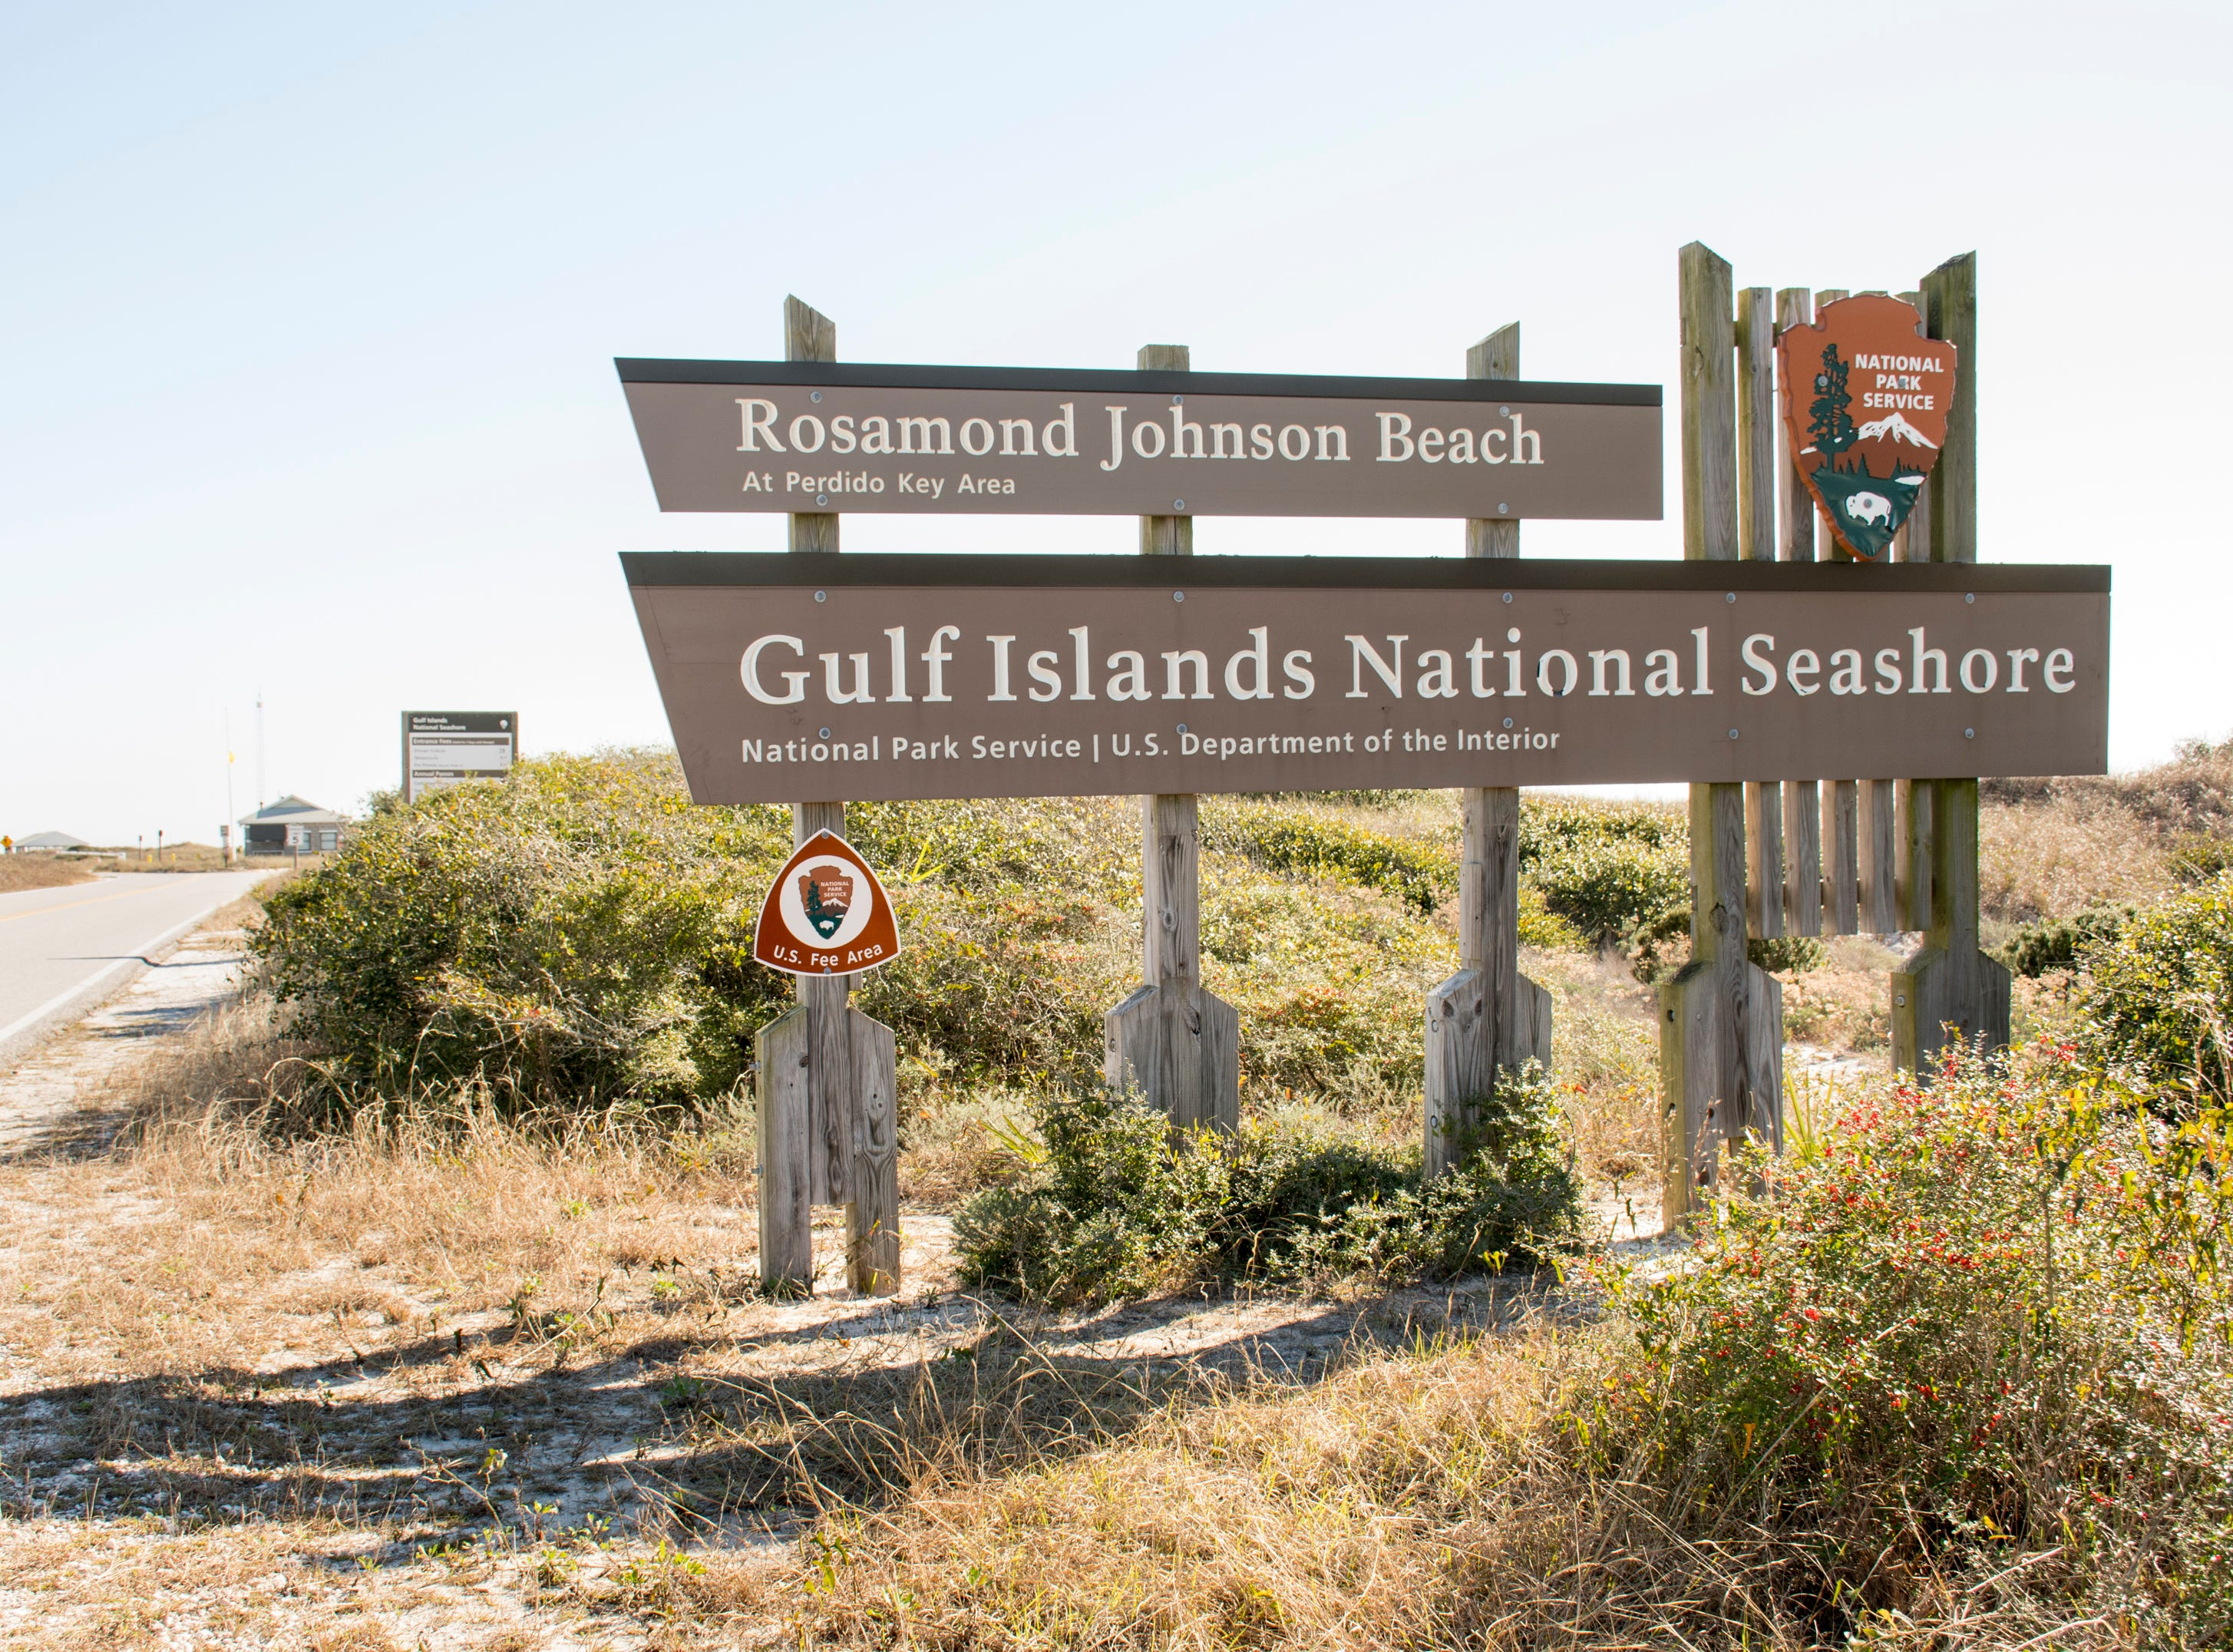 Gulf Islands National Seashore's Rosamond Johnson Beach in Perdido Key remains closed Friday, Jan. 11, 2019, as the federal government shutdown continues.